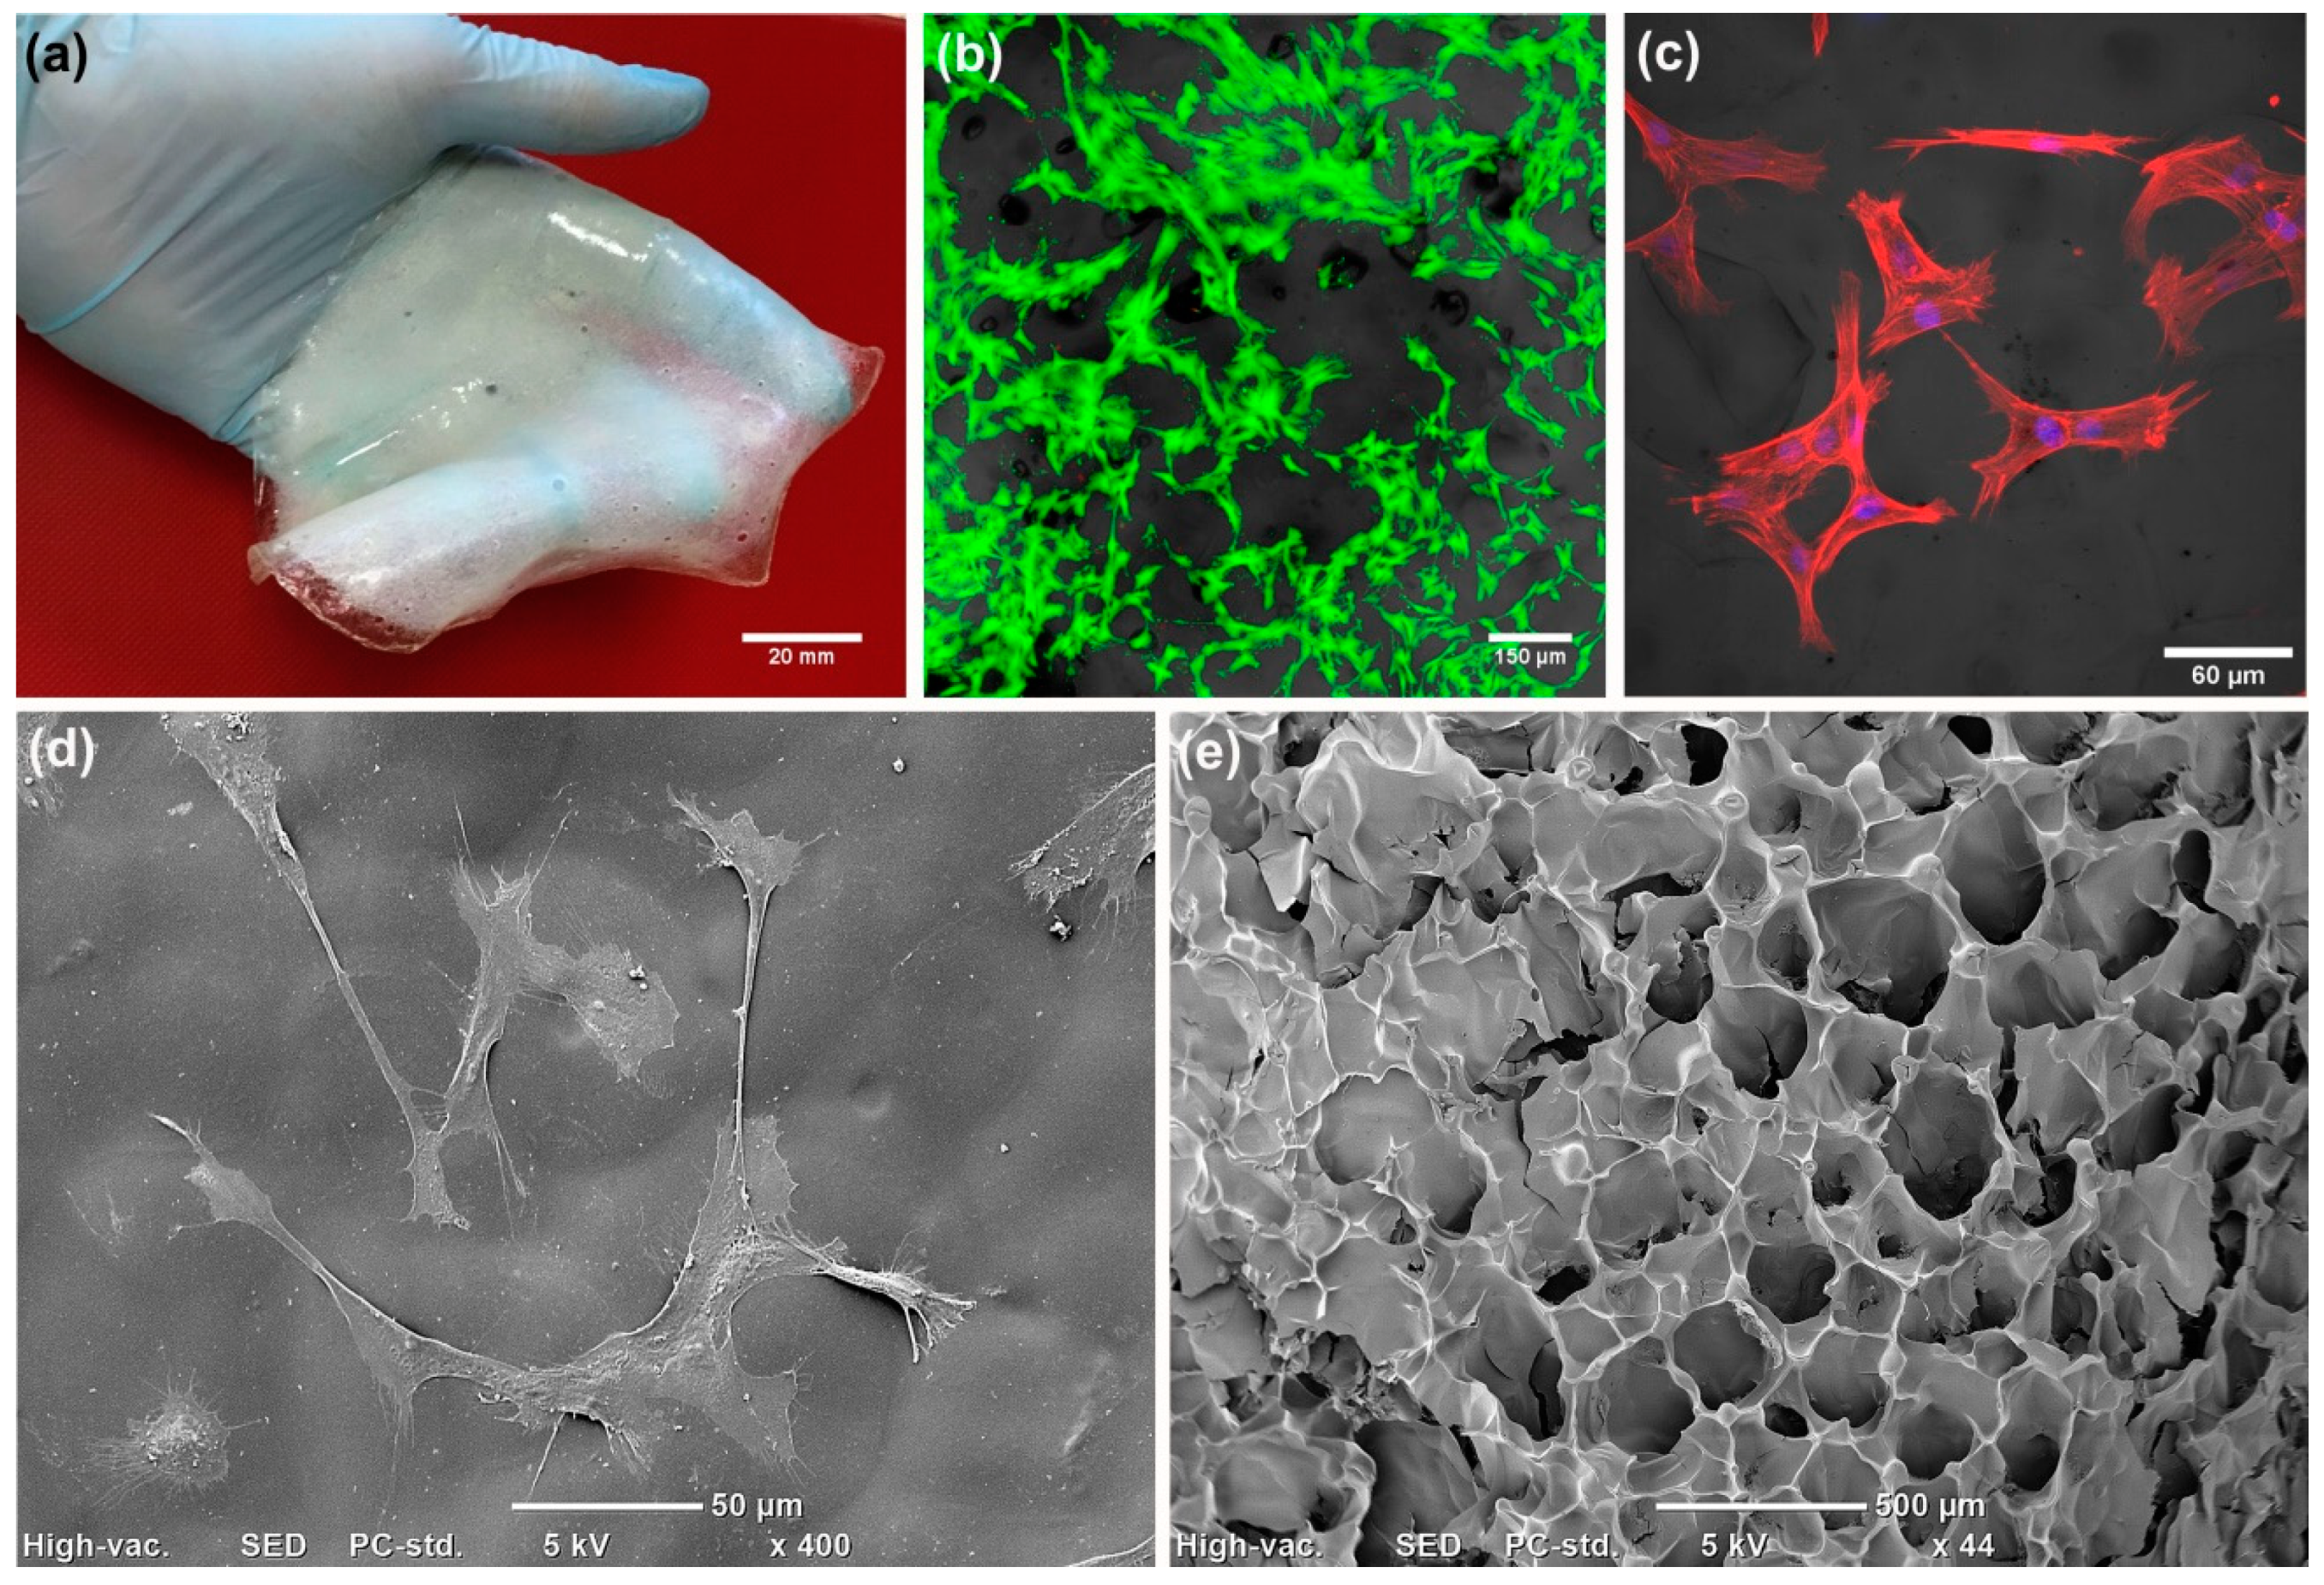 Cells Free Full Text A Concise Review On Tissue Engineered Artificial Skin Grafts For Chronic Wound Treatment Can We Reconstruct Functional Skin Tissue In Vitro Html